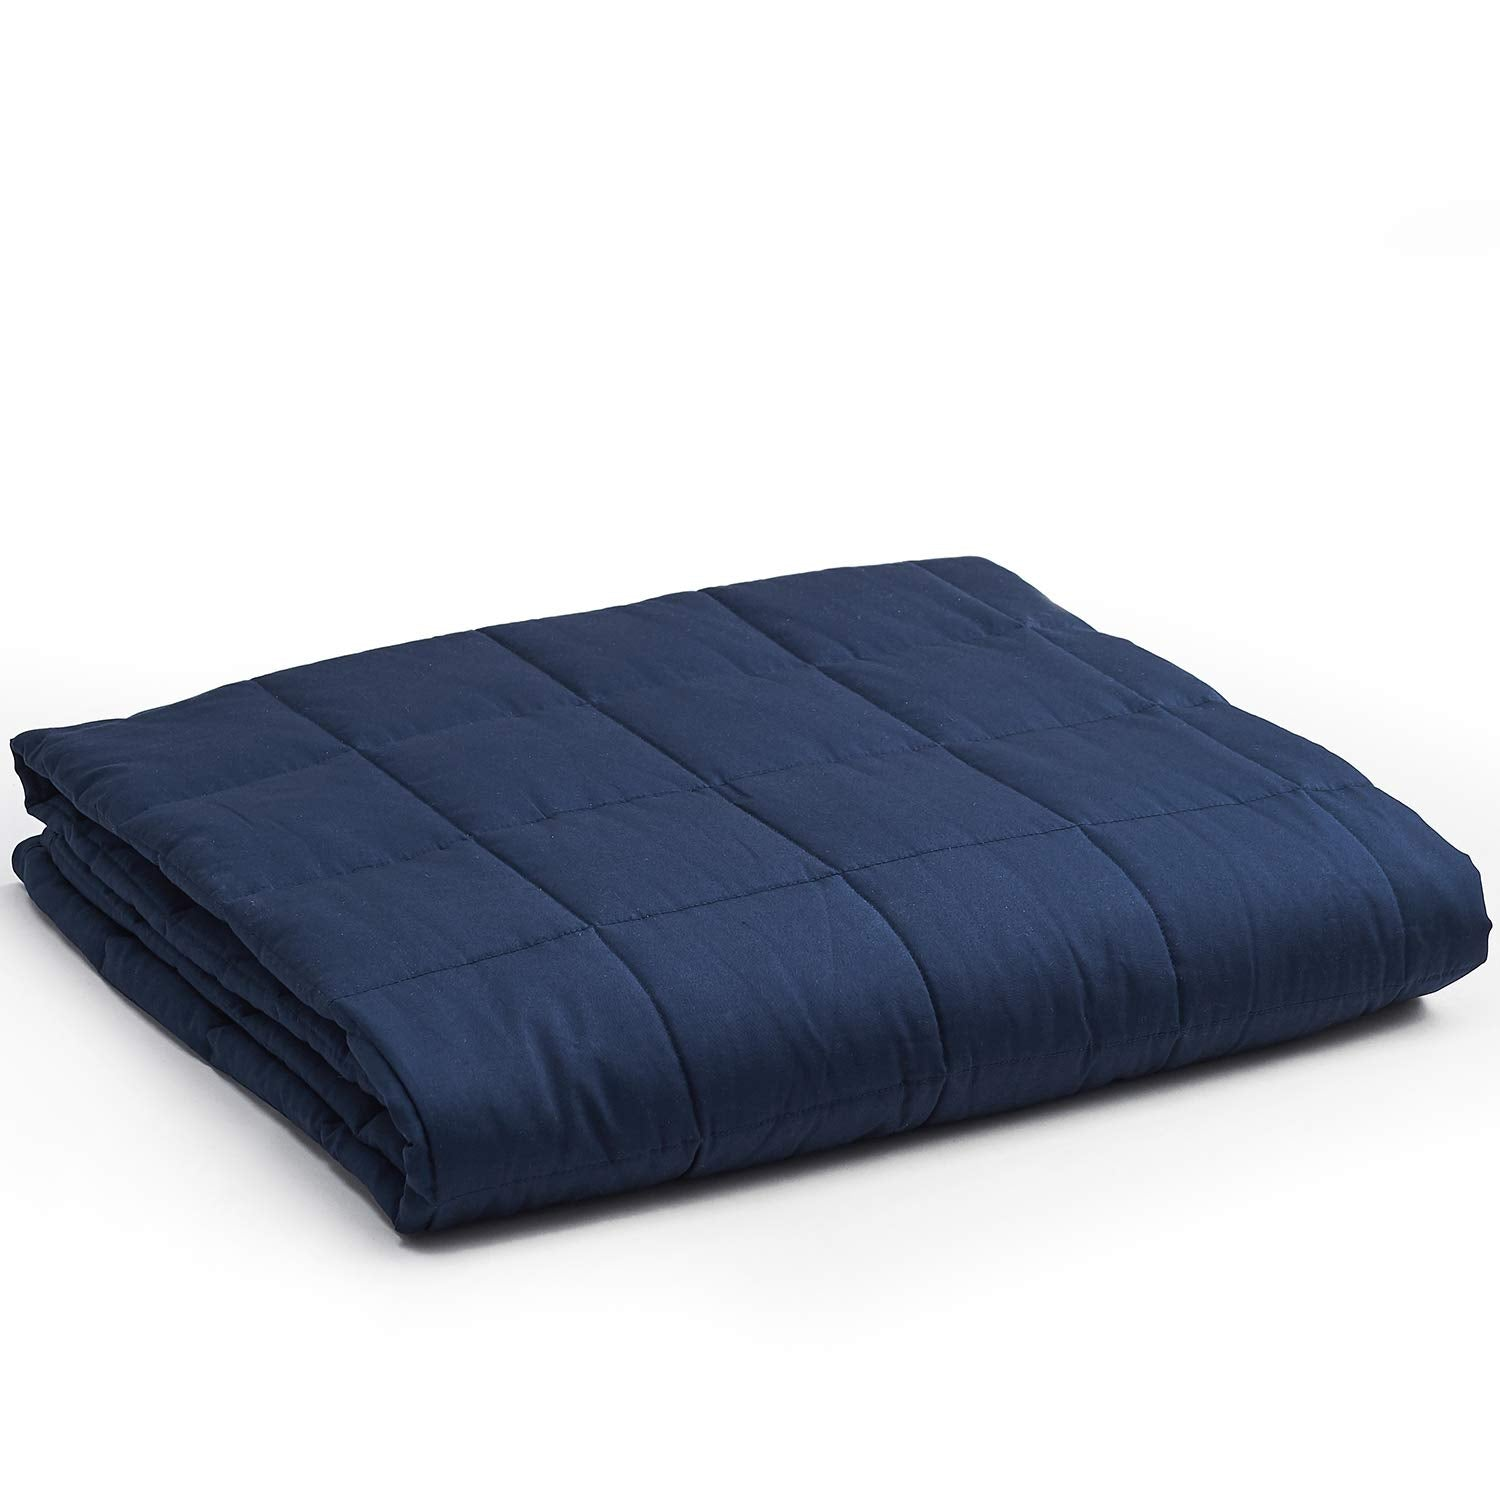 Weighted Blanket (15 lbs, 48''x72'', Twin Size) - Navy